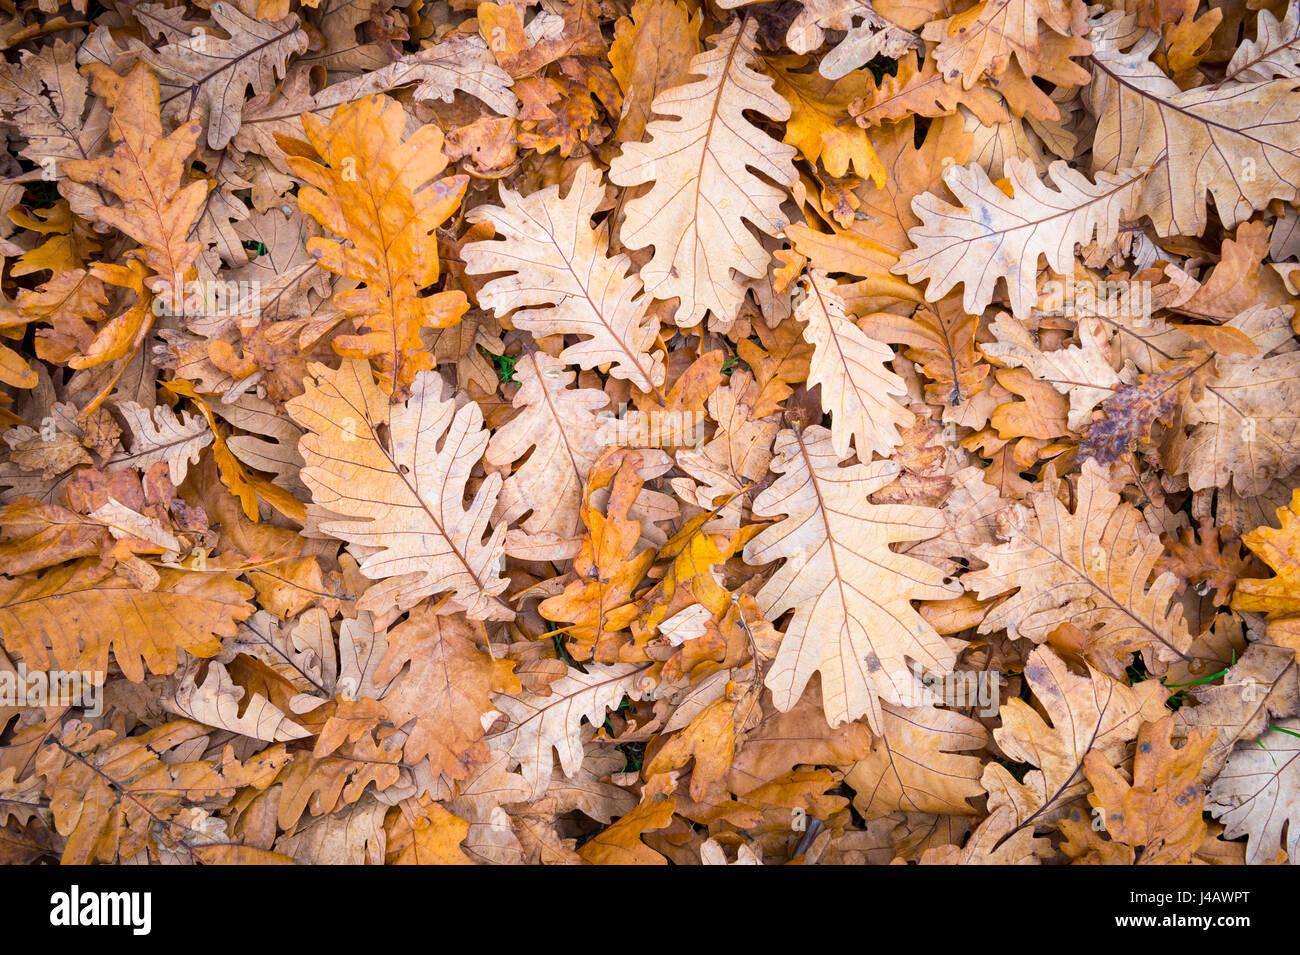 Fall foliage background in muted brown and orange tones in a pile of fallen leaves from a forest of oak trees - Stock Image